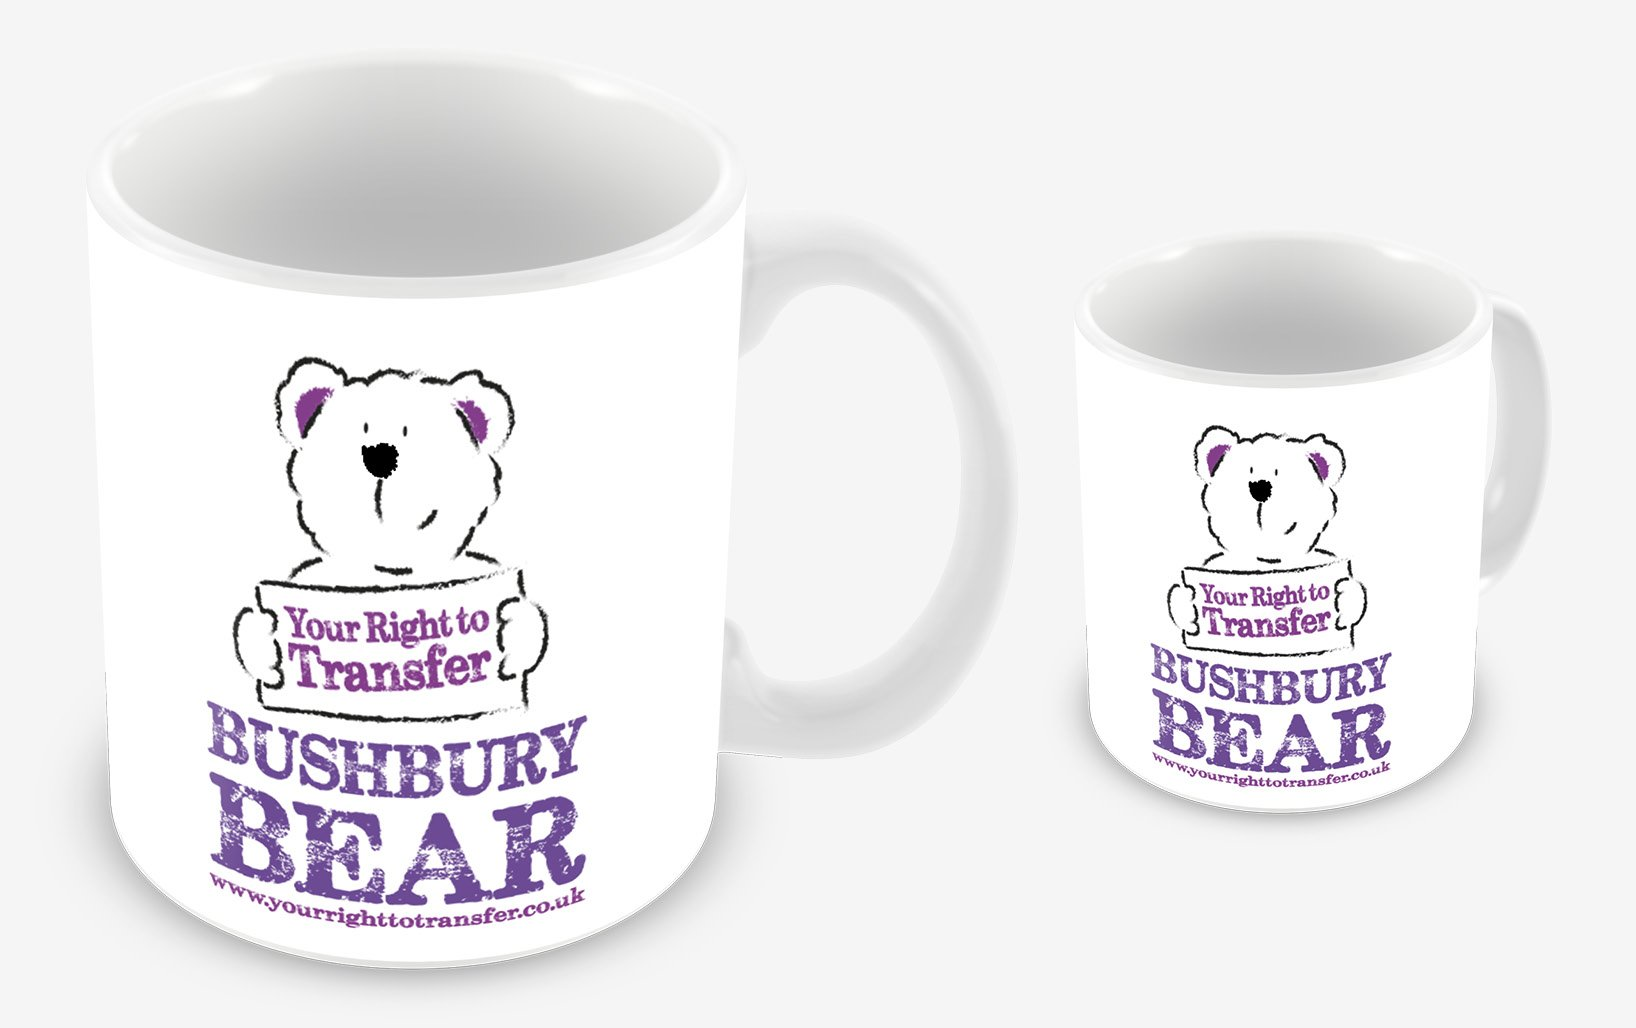 Bushbury promotional mugs